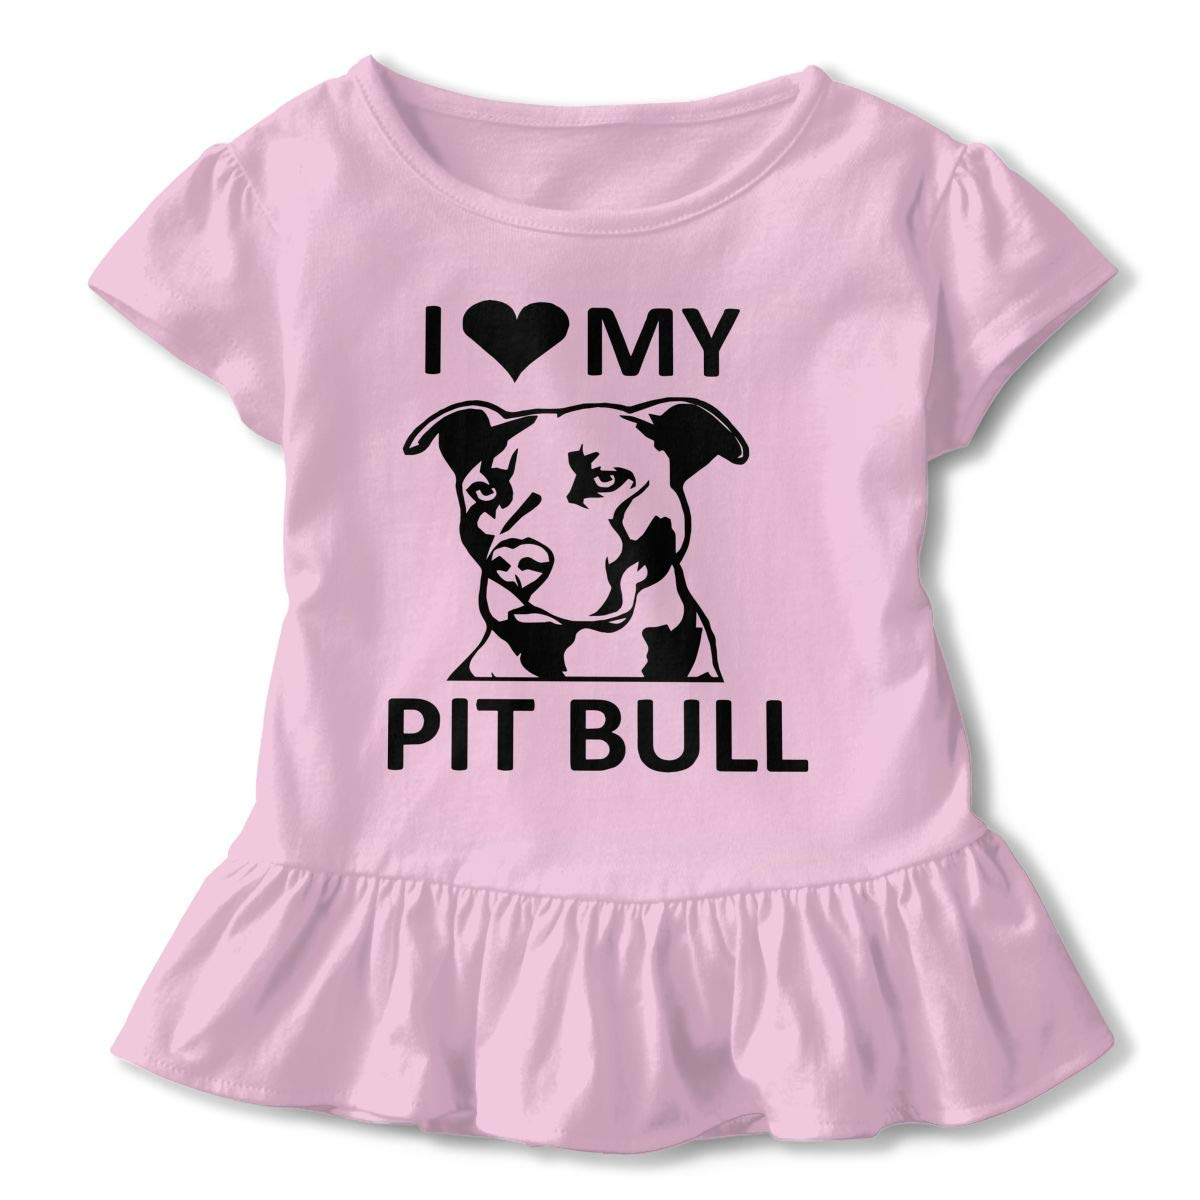 I Love My Pitbull Baby Girls Short Sleeve Tshirts Help Shirt